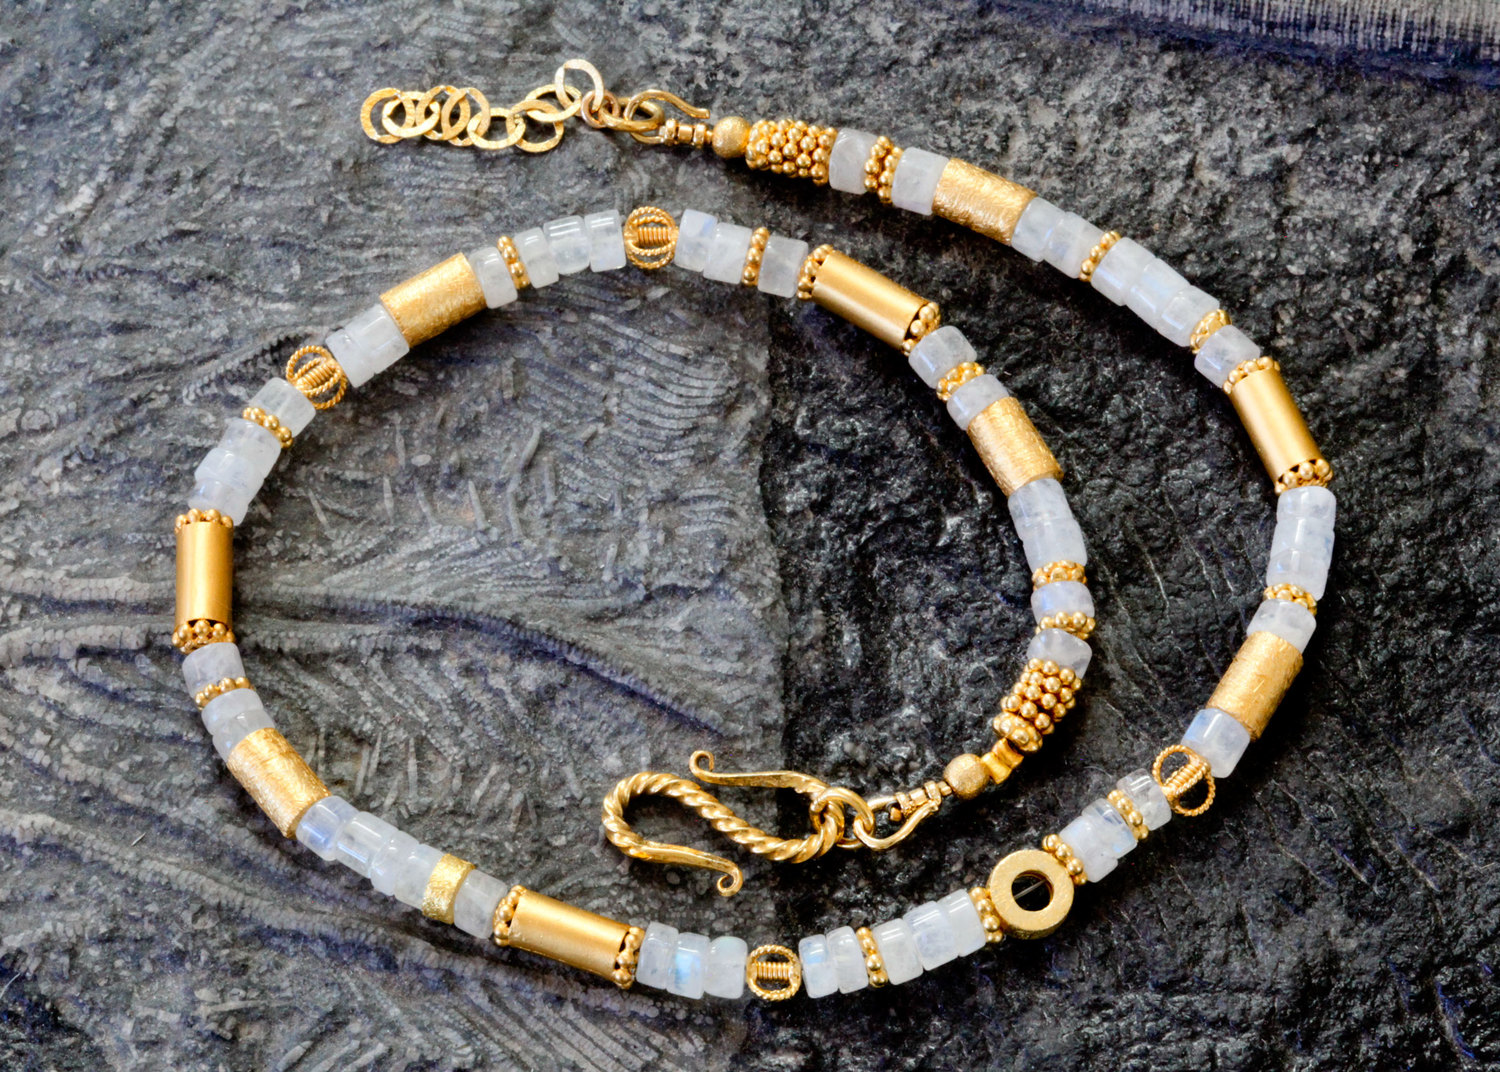 Slender glow of icy moonstones designed with 24K vermeil accents enfolds the neck comfortably like a light hug. Necklace is closed with 18K brushed vermeil hook clasp. Adjustable length 16 inches. (Can be lengthened with chain.)